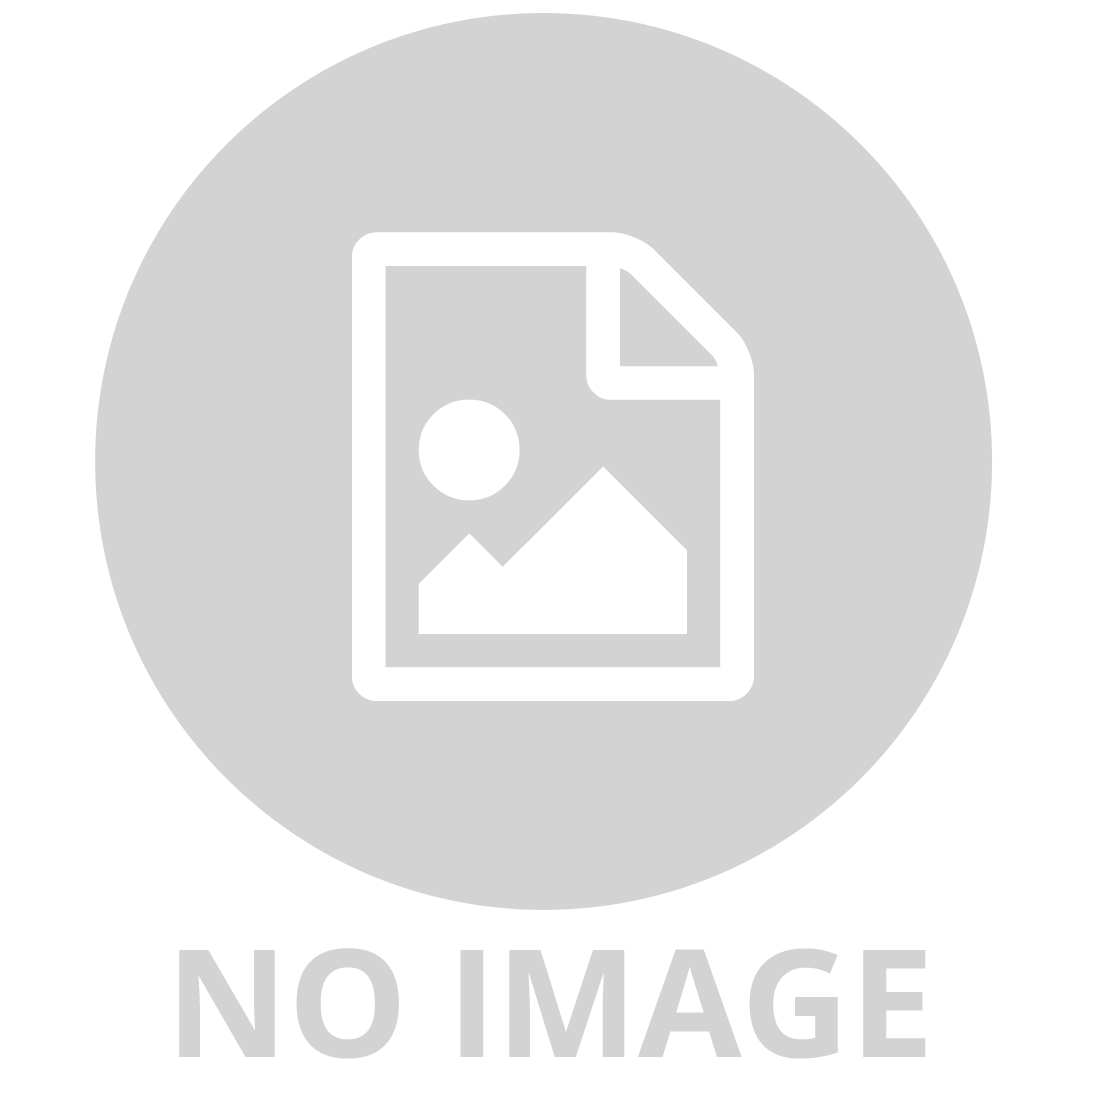 HOW TO TRAIN YOUR DRAGON- HICCUP AND TOOTHLESS